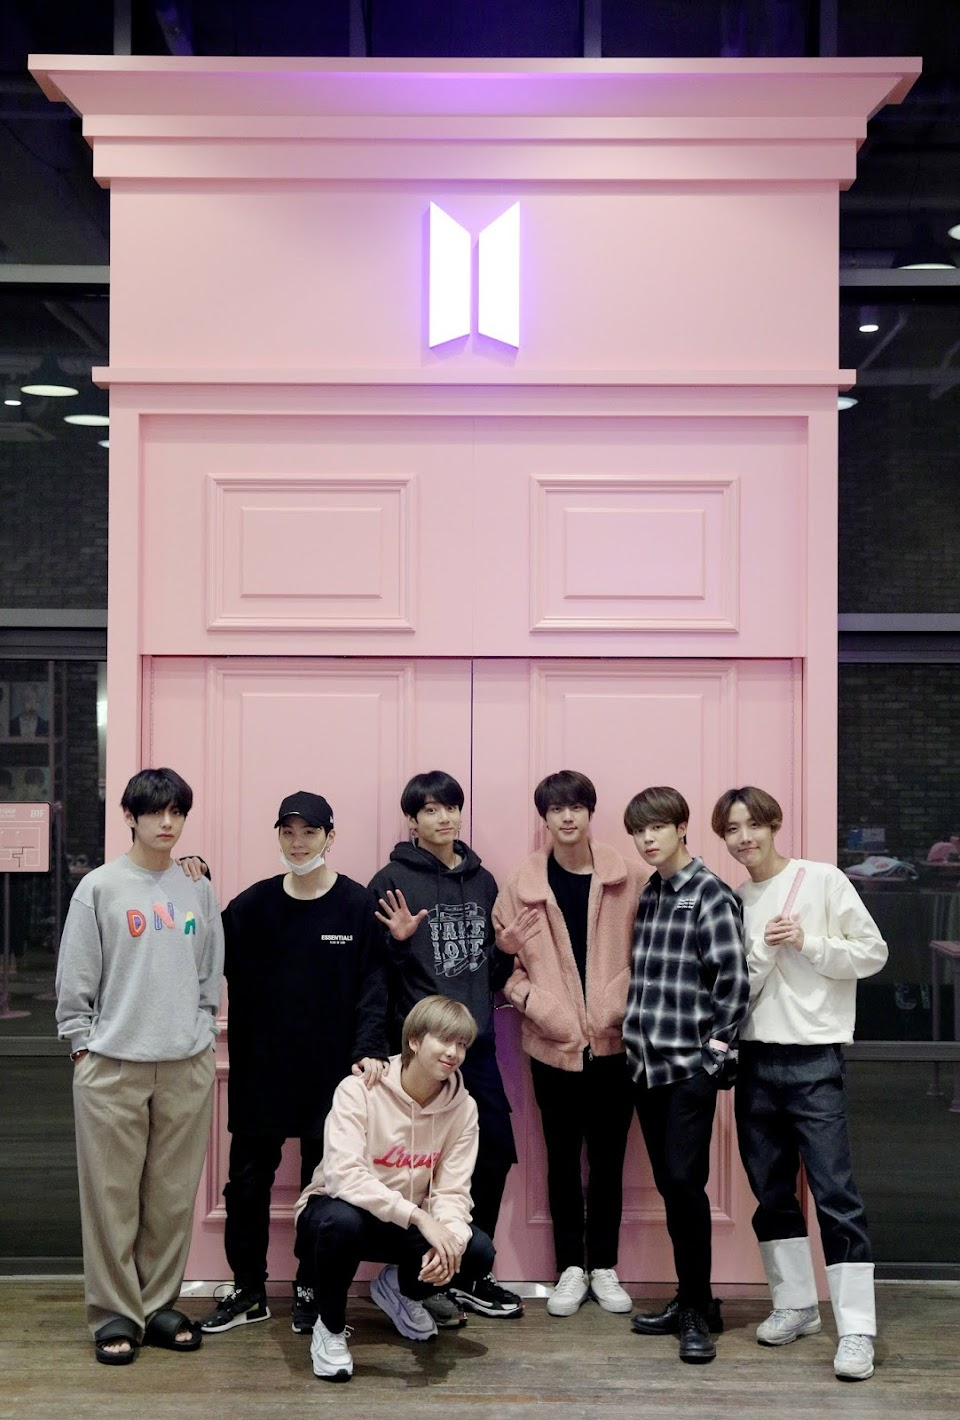 house of bts main